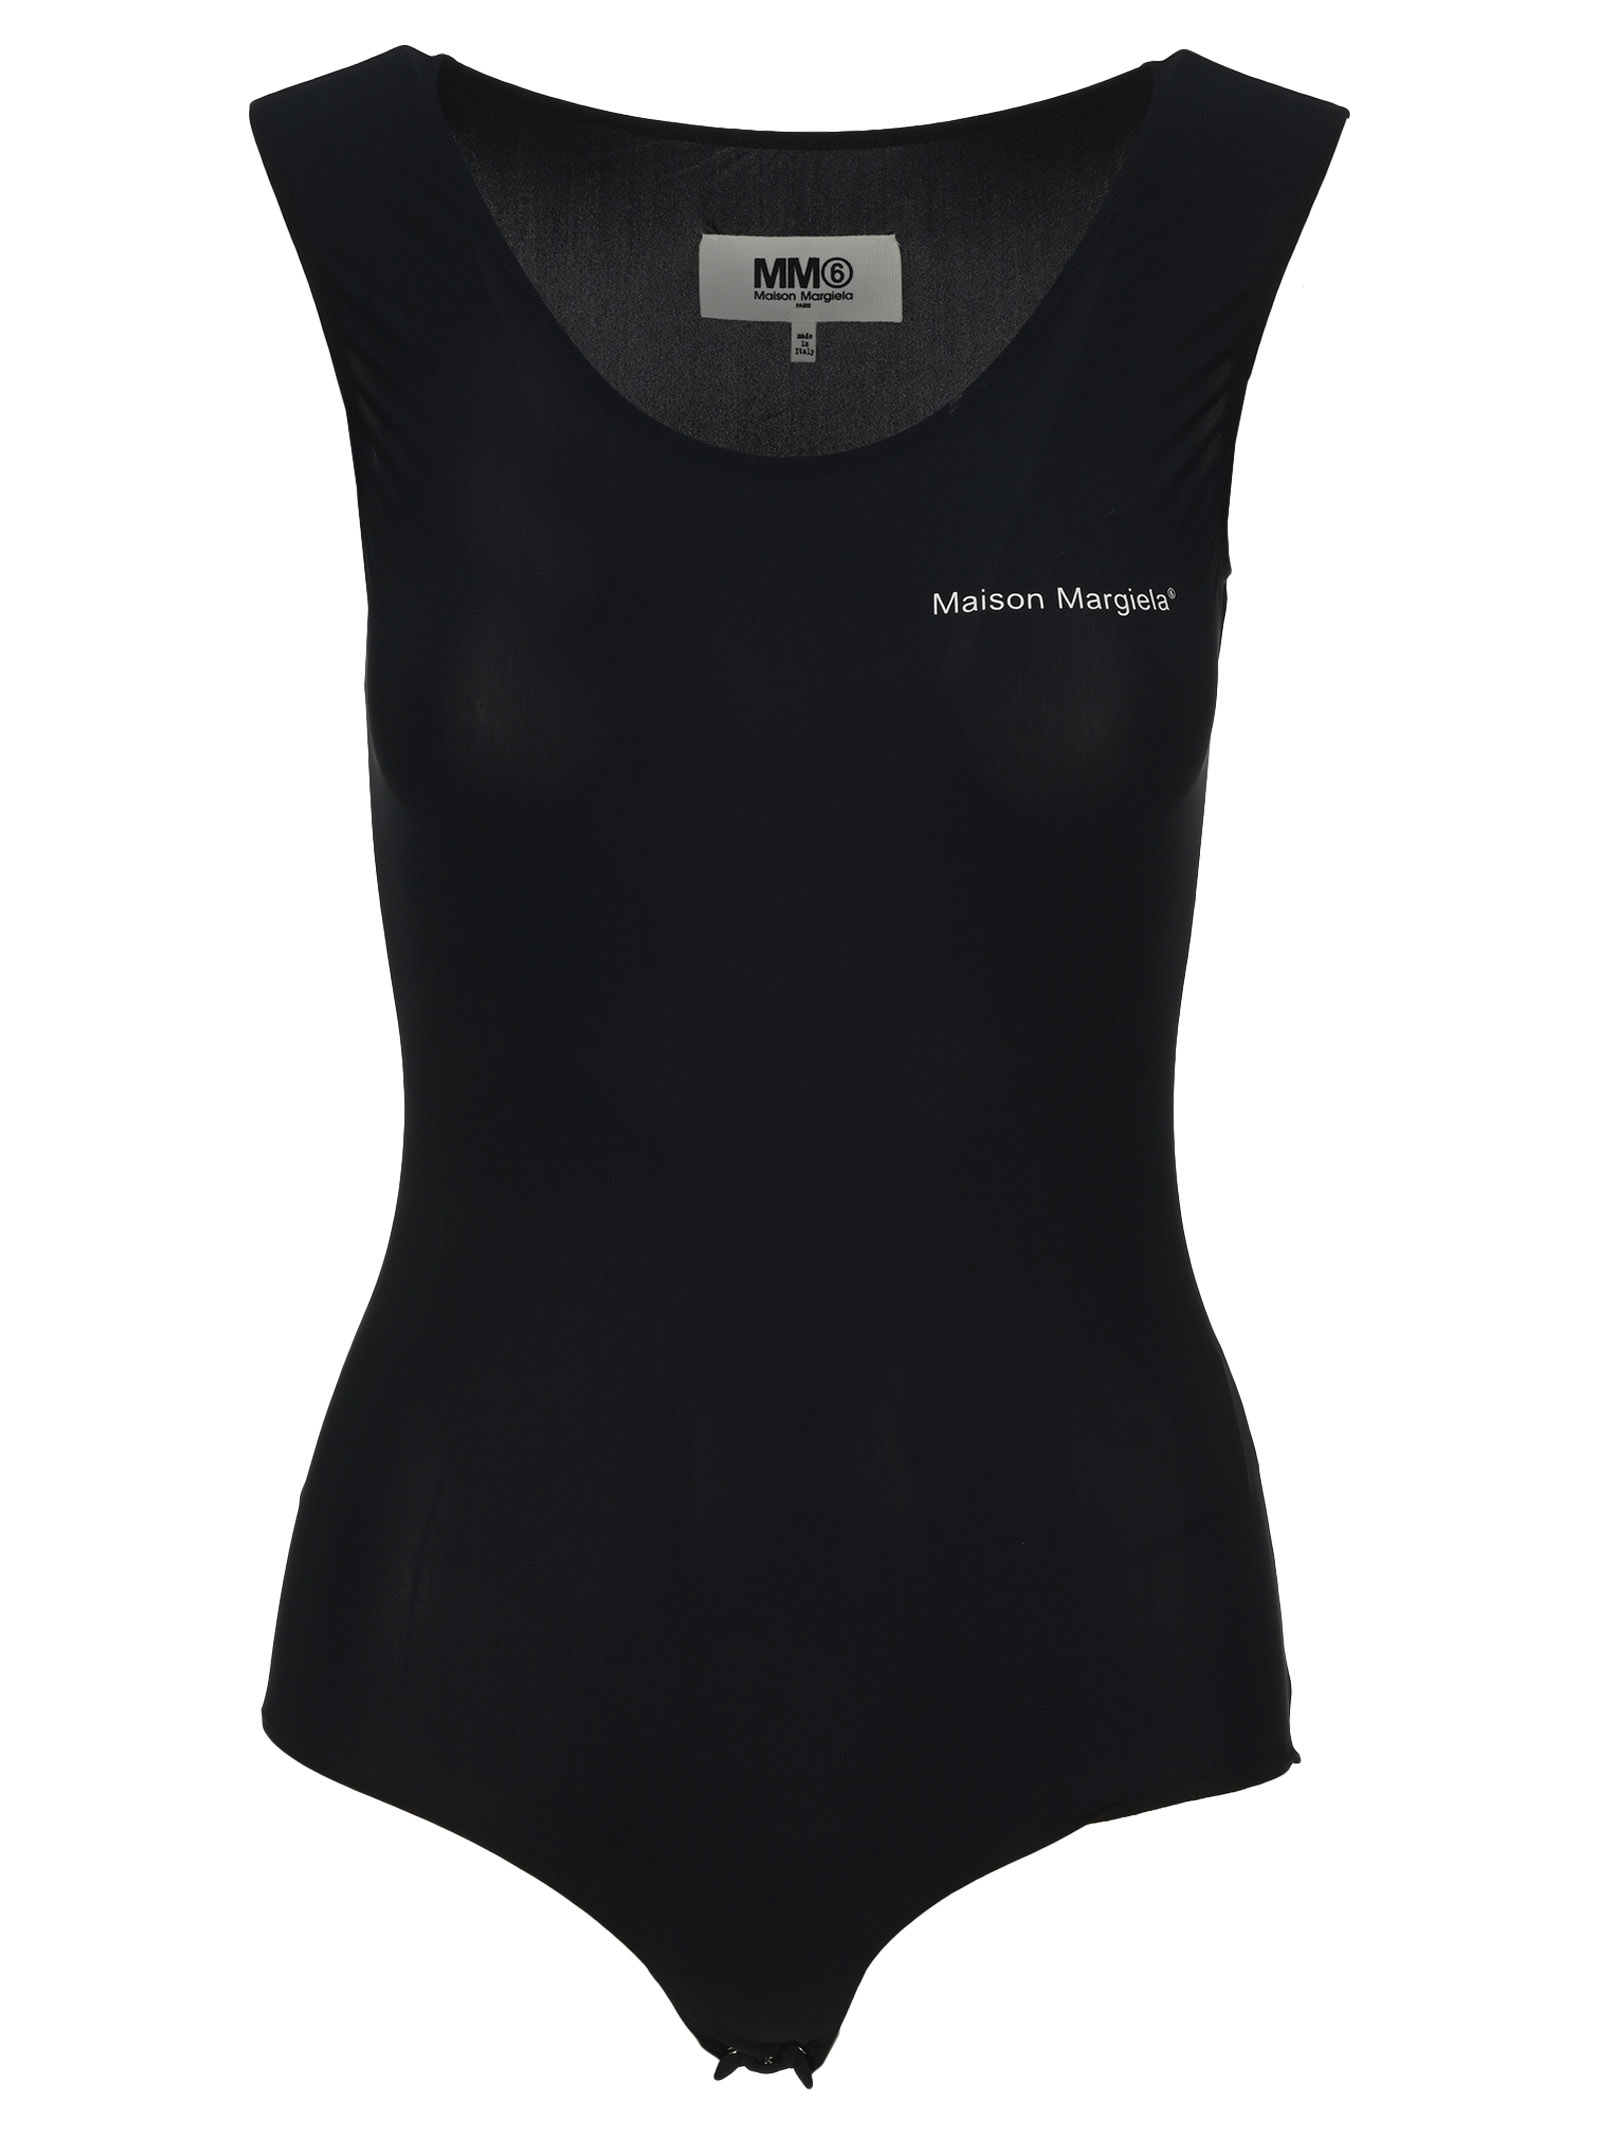 Mm6 Maison Margiela LOGO BODYSUIT